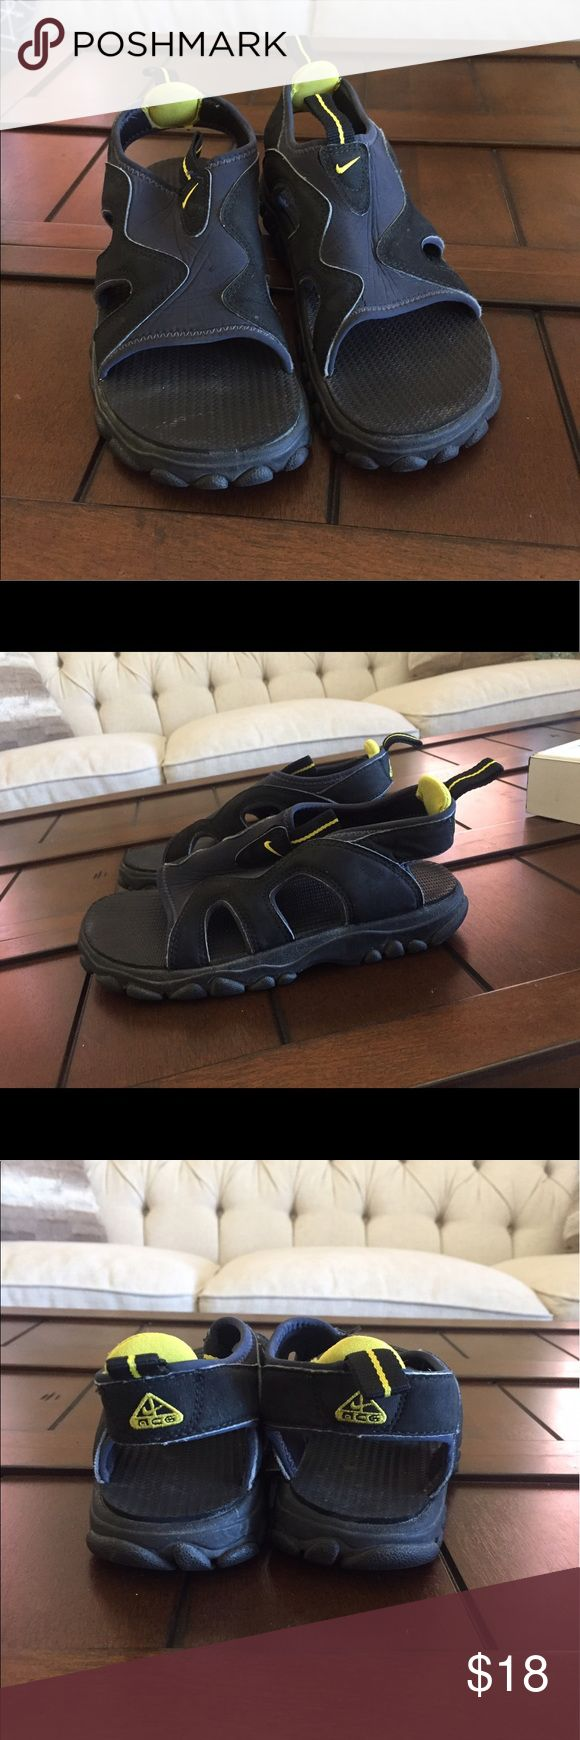 Nike water shoes Size 6 but fit like a 6.5. Used but still in good condition. Nike Shoes Sandals